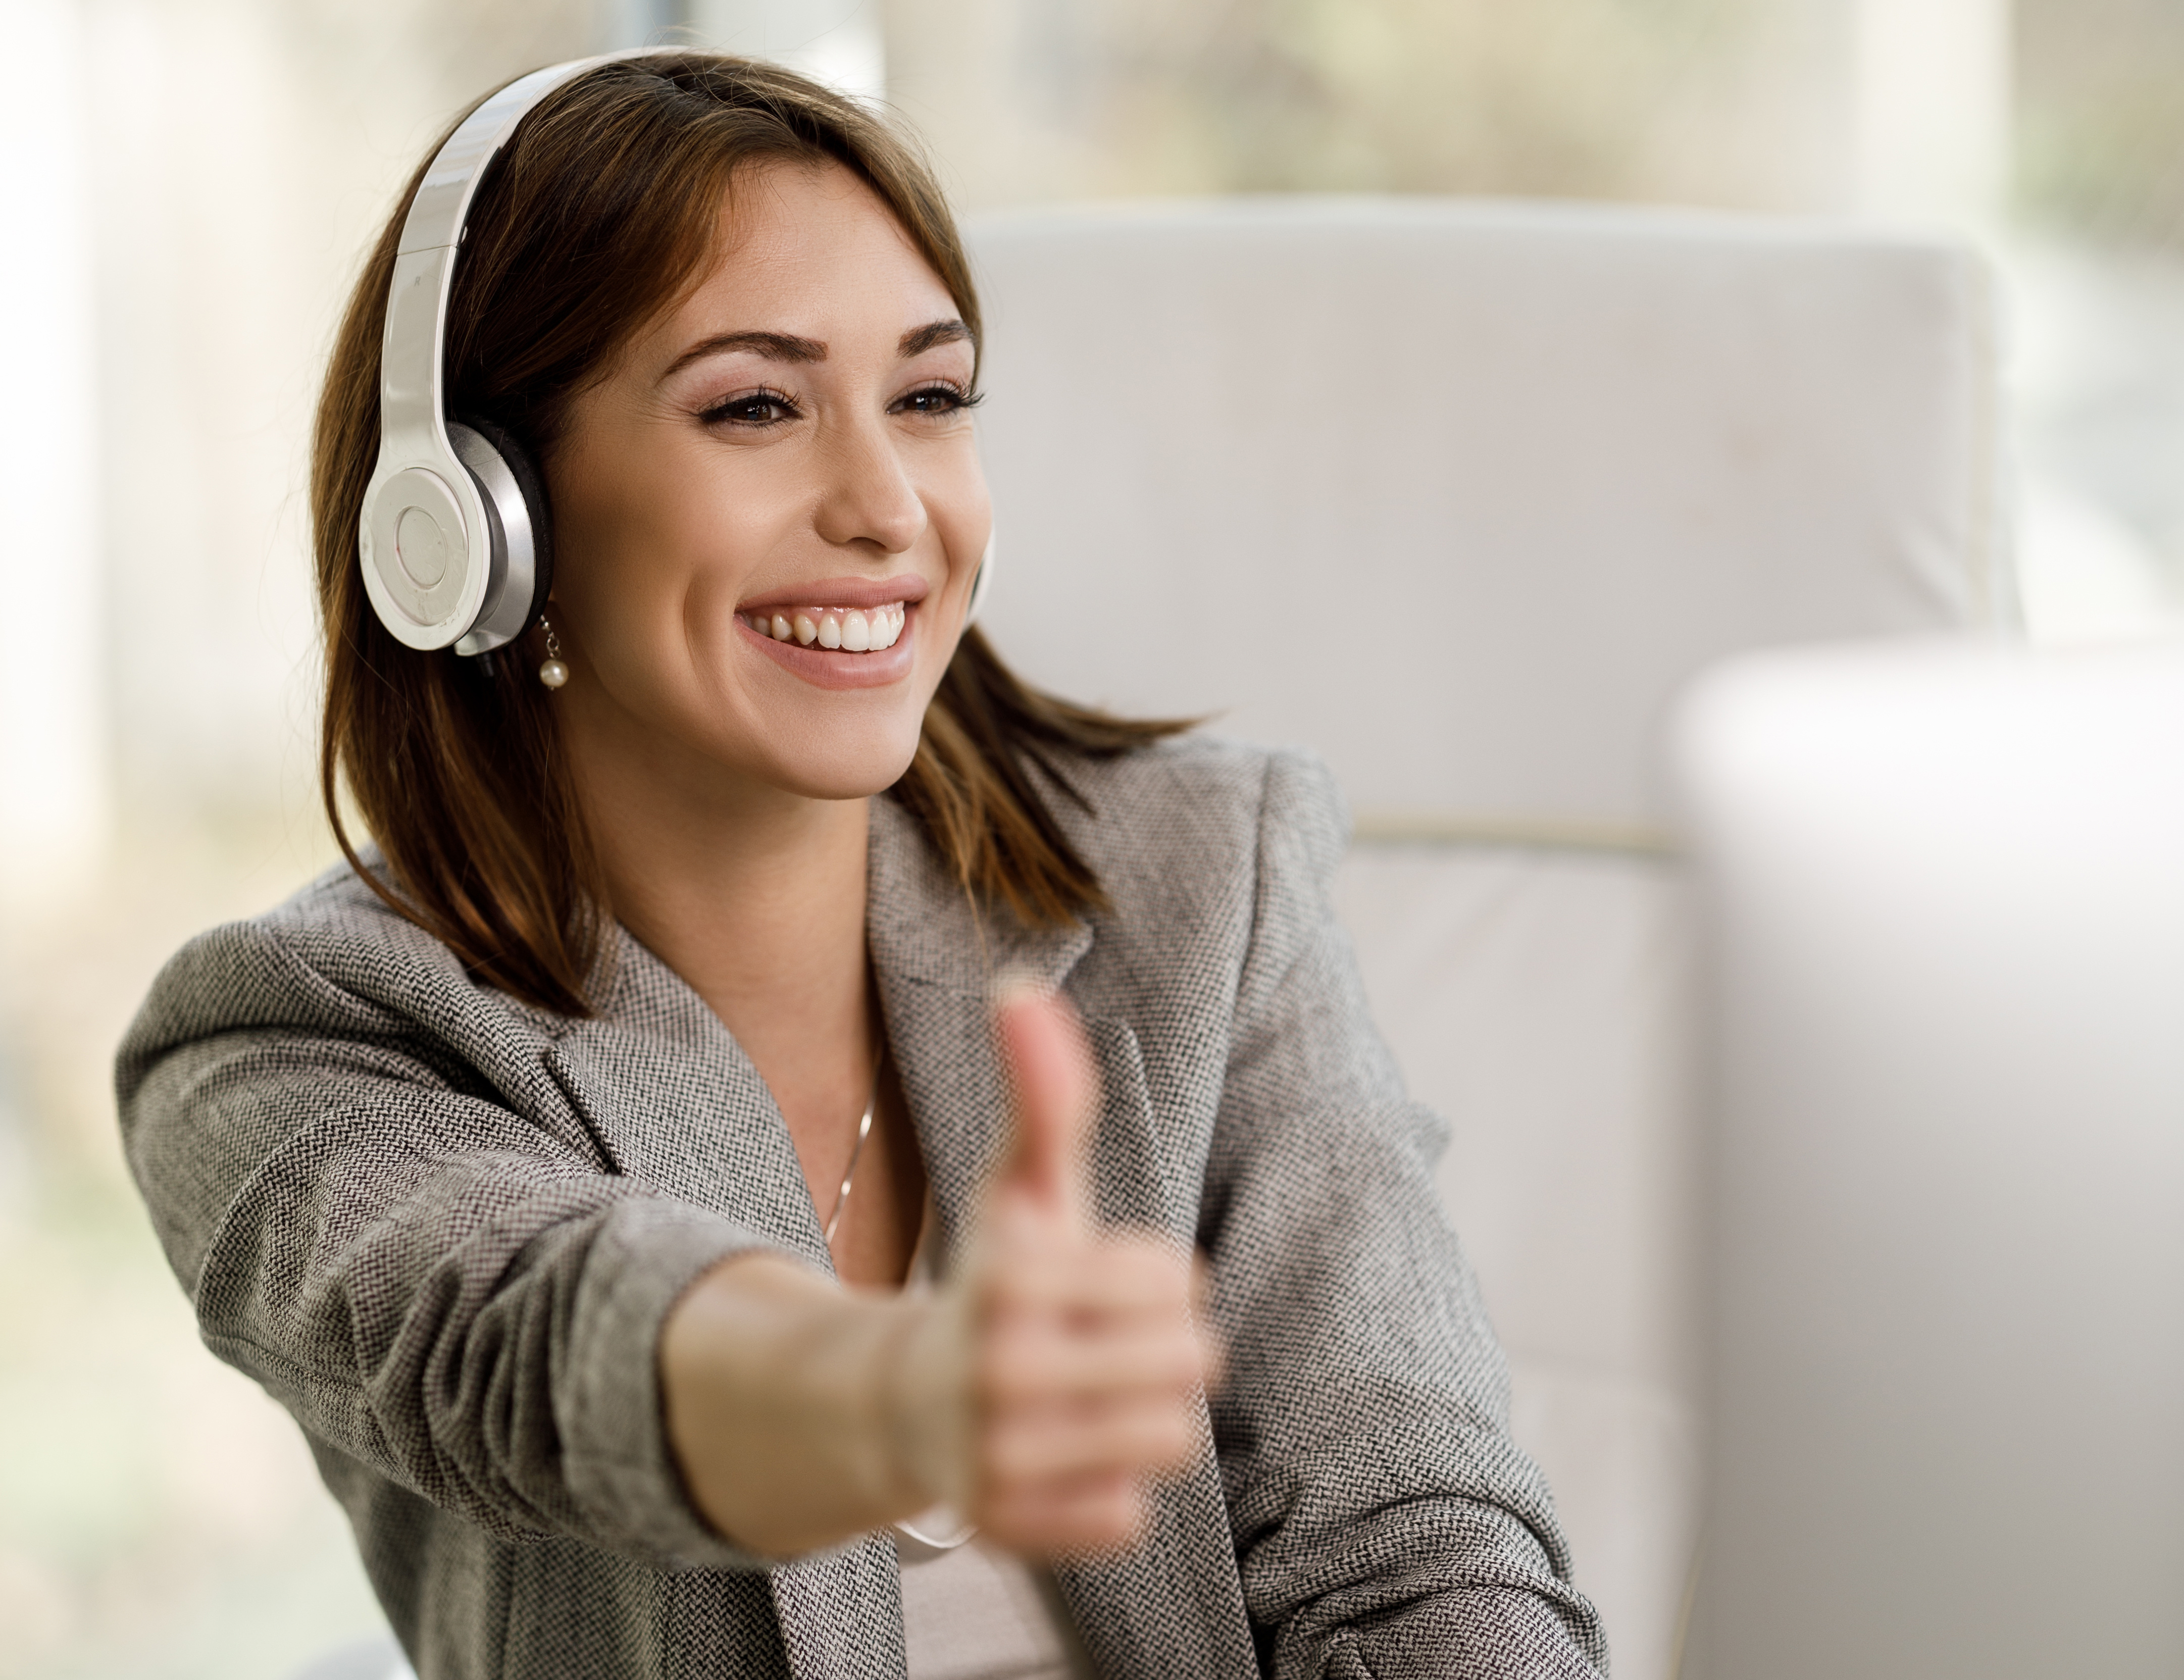 Women Remote Worker Smiling and Giving Thumbs Up